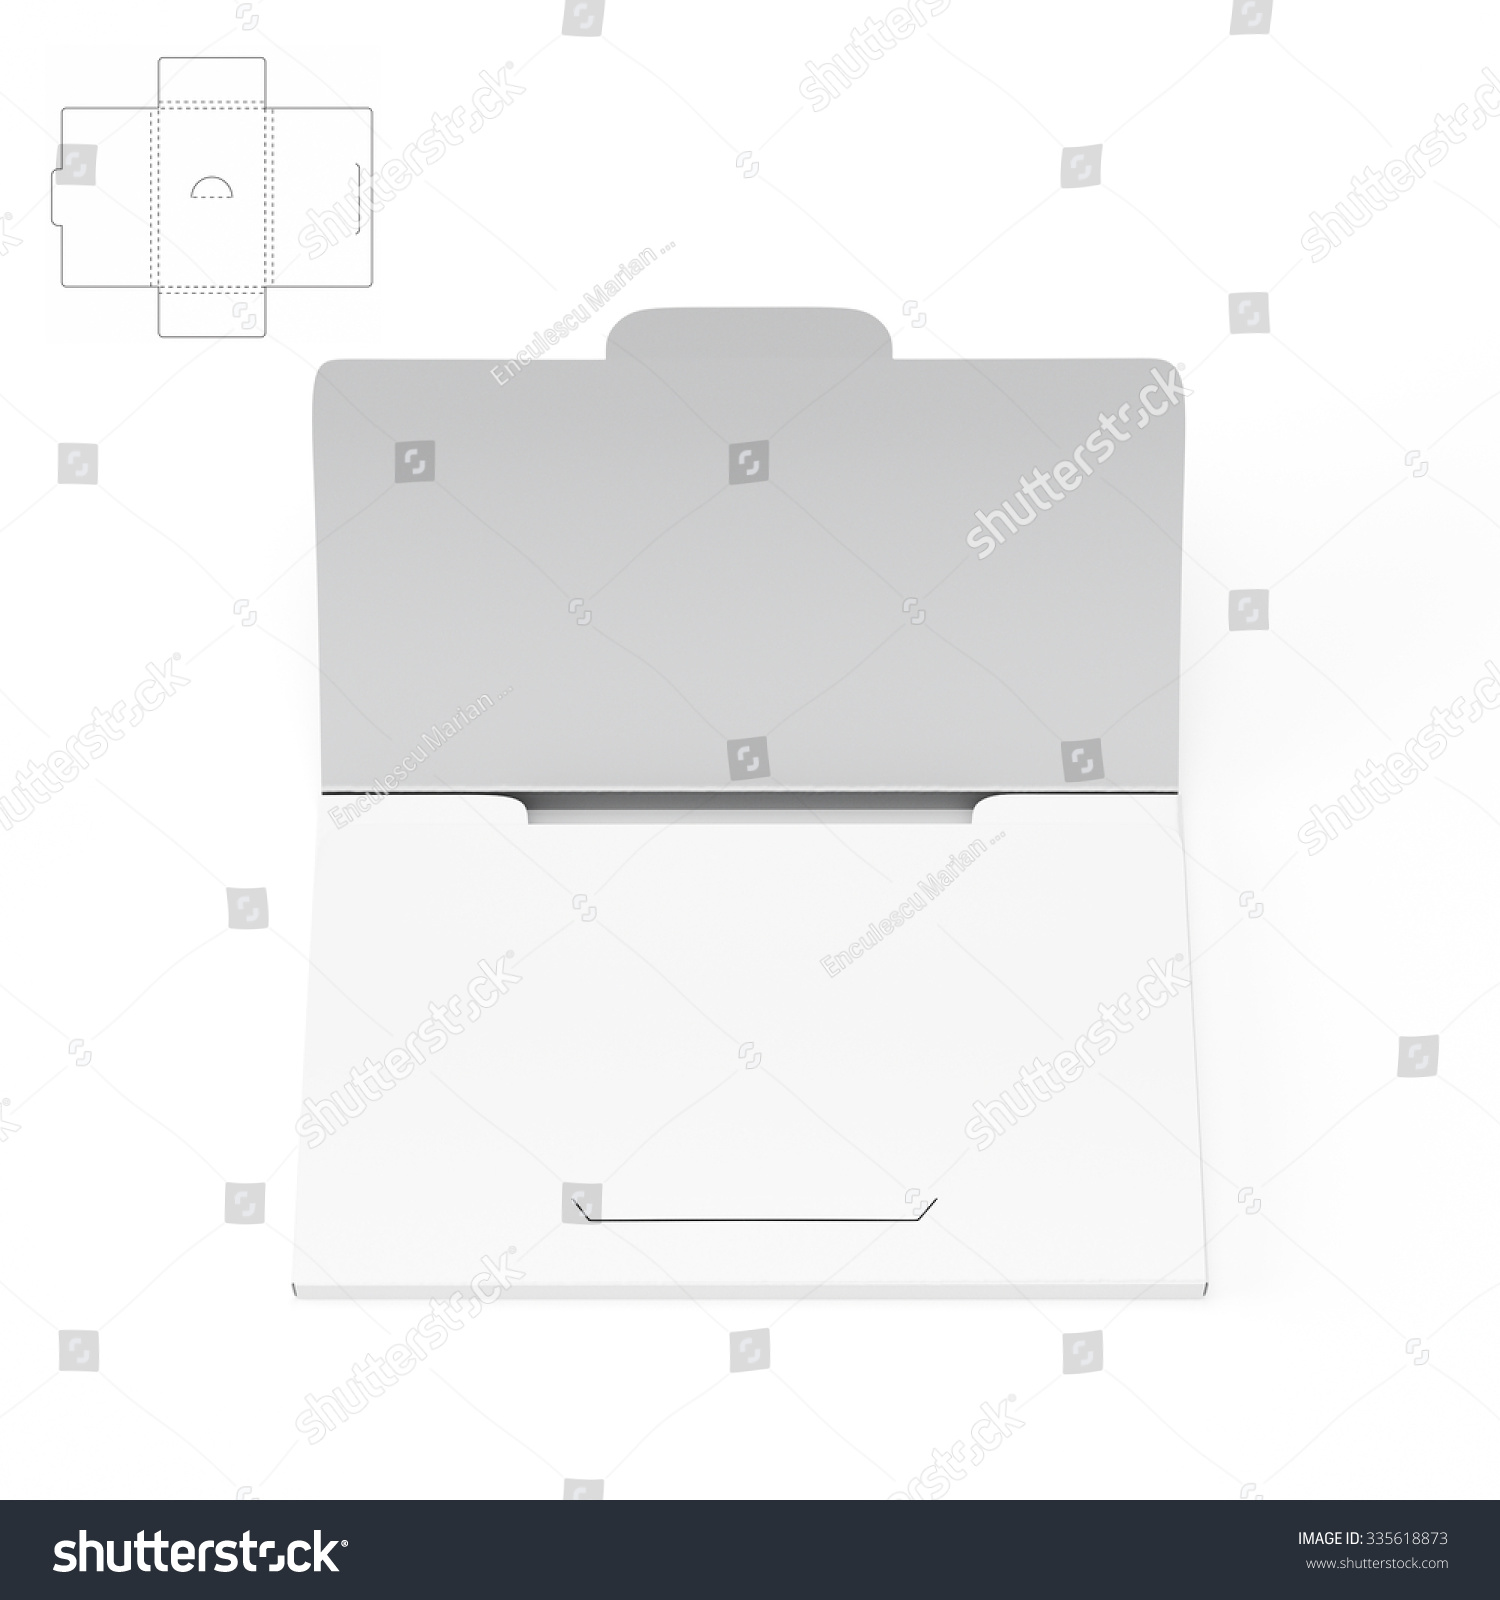 Slim Business Card Box Die Cut Stock Illustration 335618873 ...